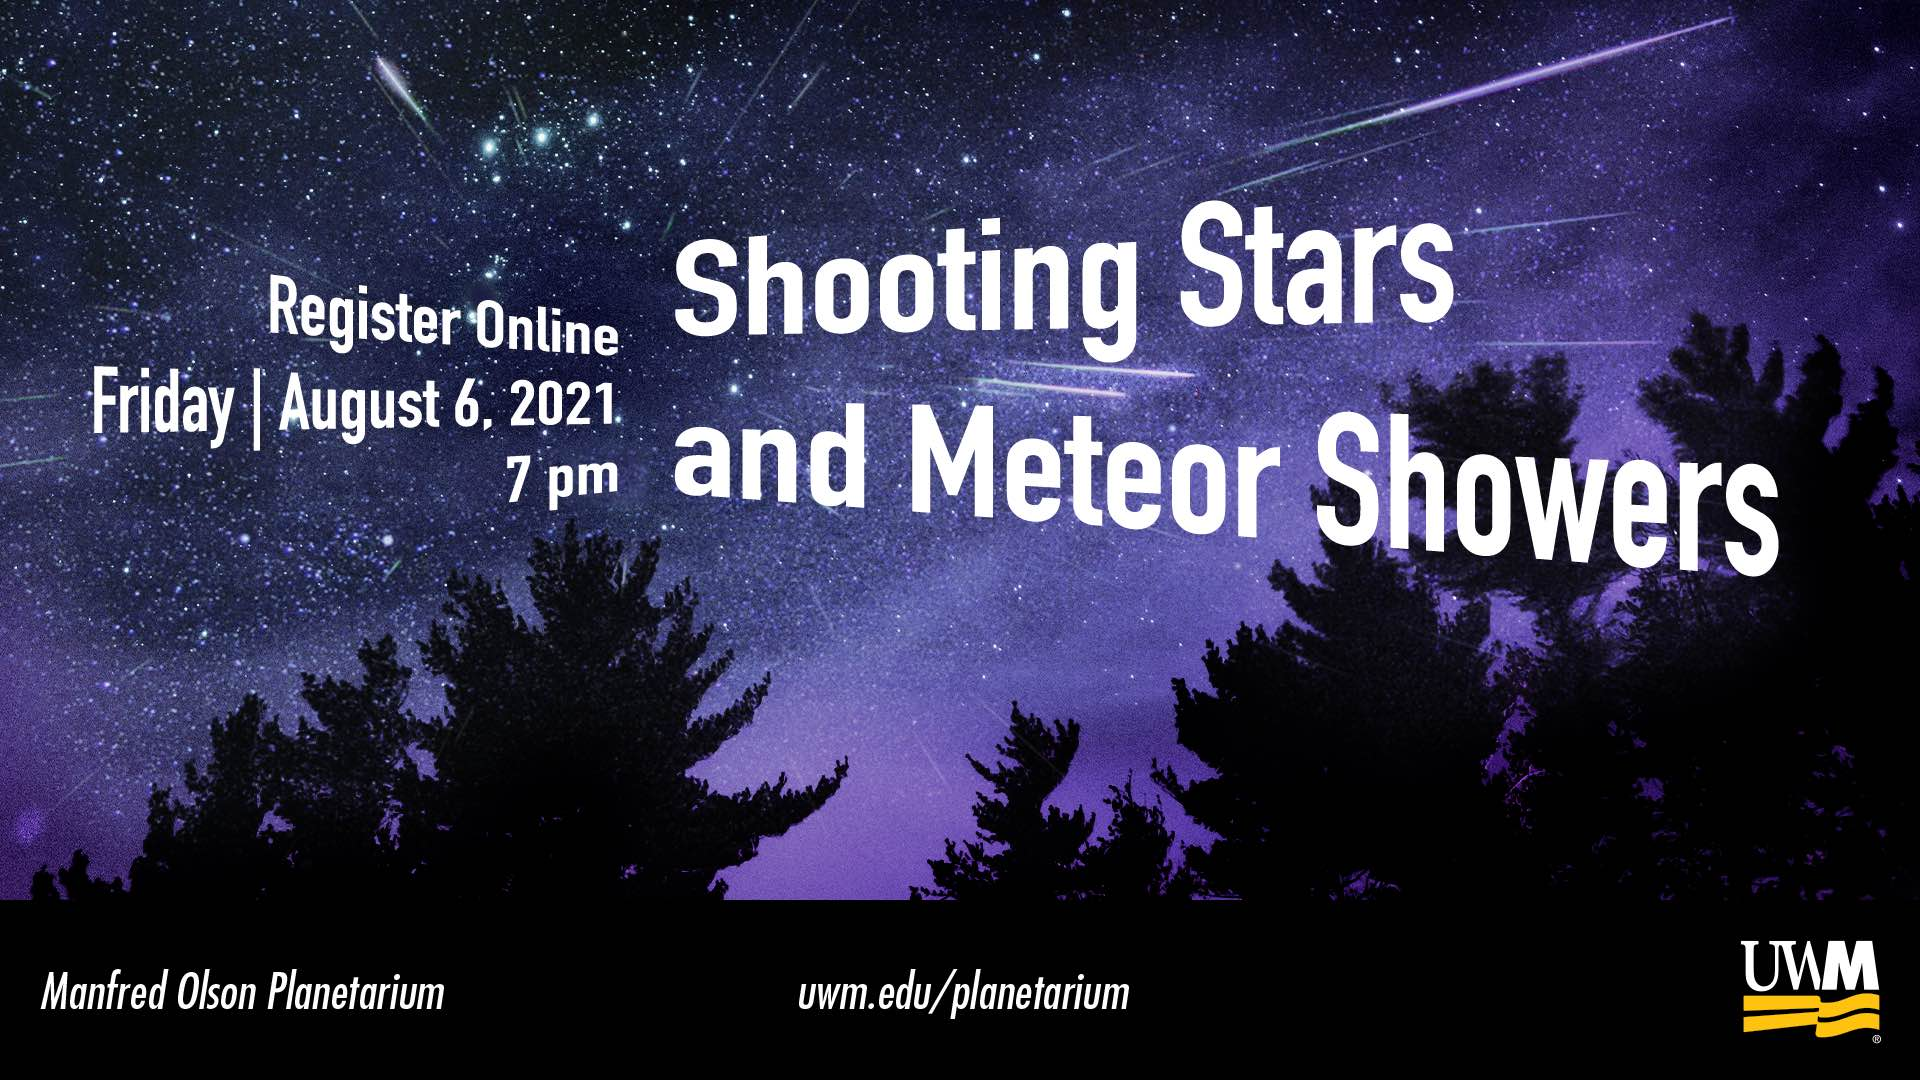 Shooting Stars and Meteor Showers, August 6, 2021 at 7 pm